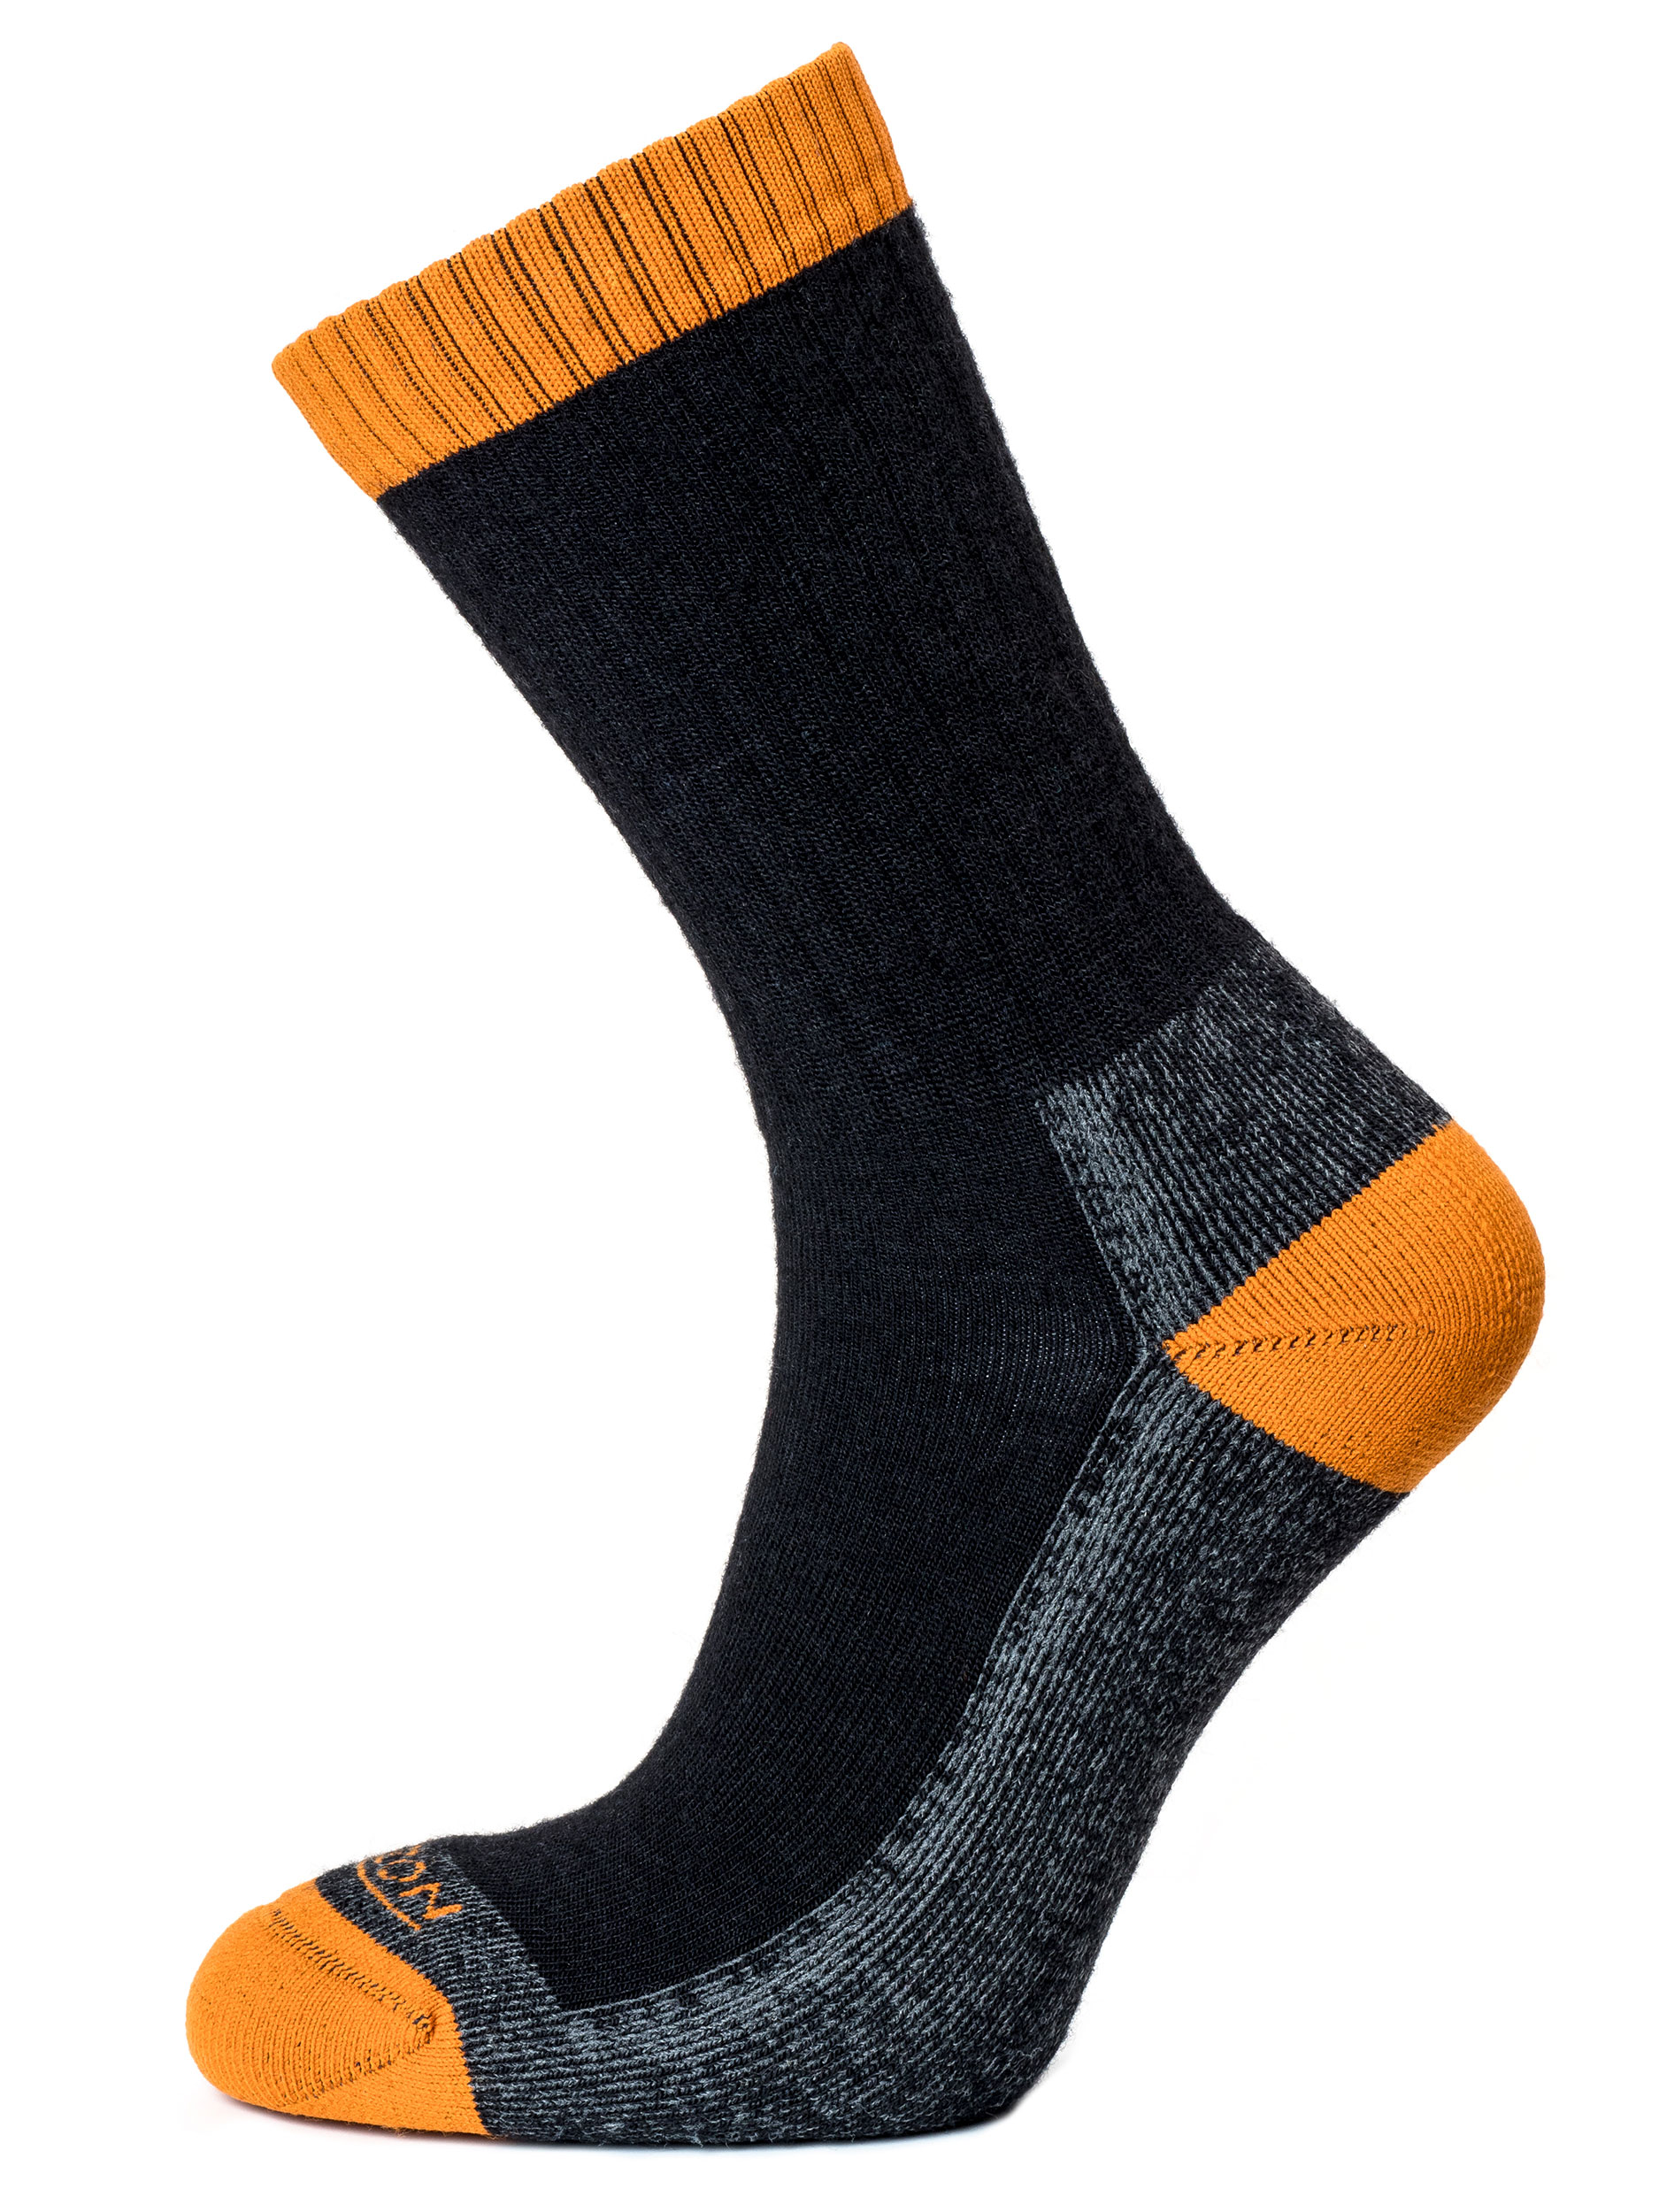 Micro Crew Men's Anthracite / Burnt Orange